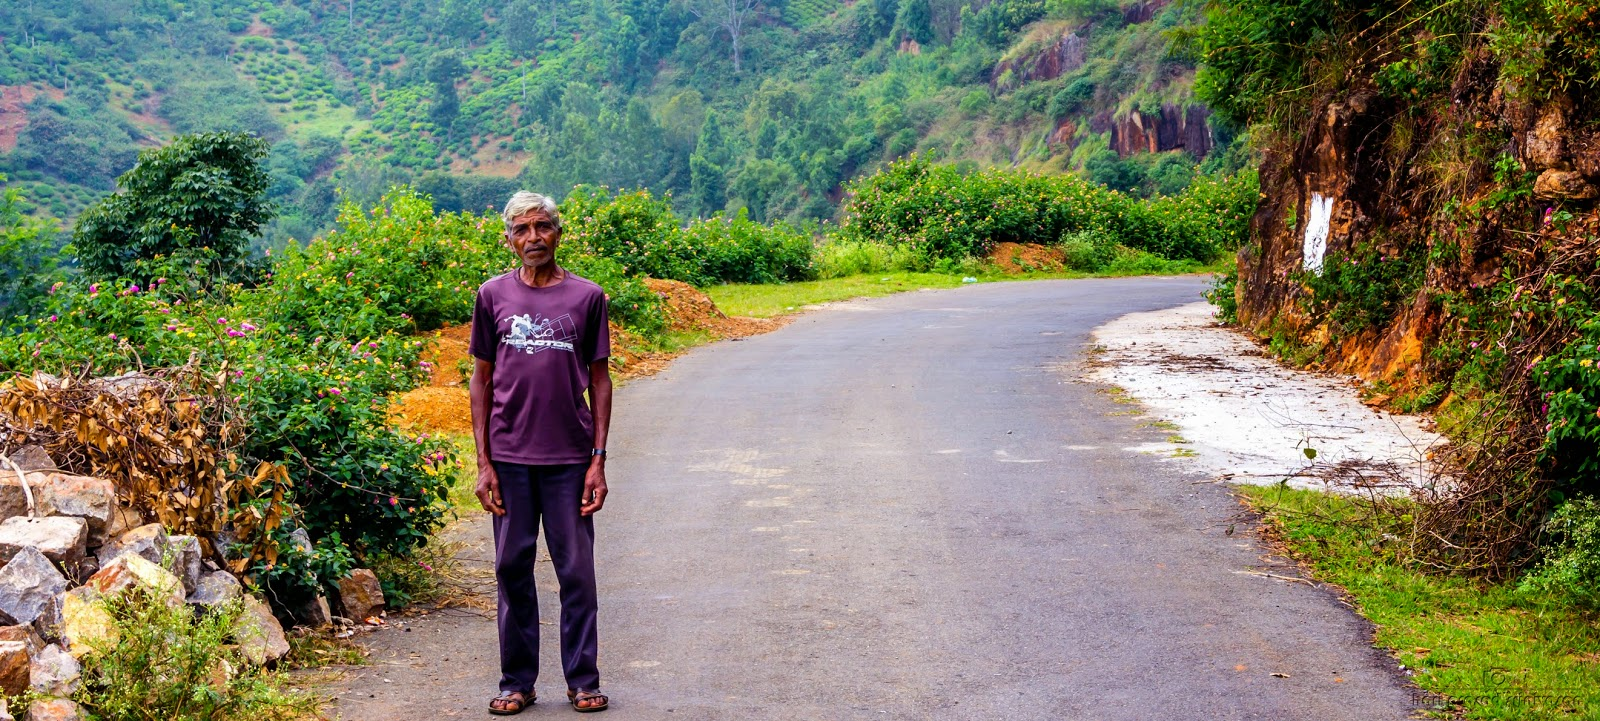 Street photography potrait of a stranger in Ooty